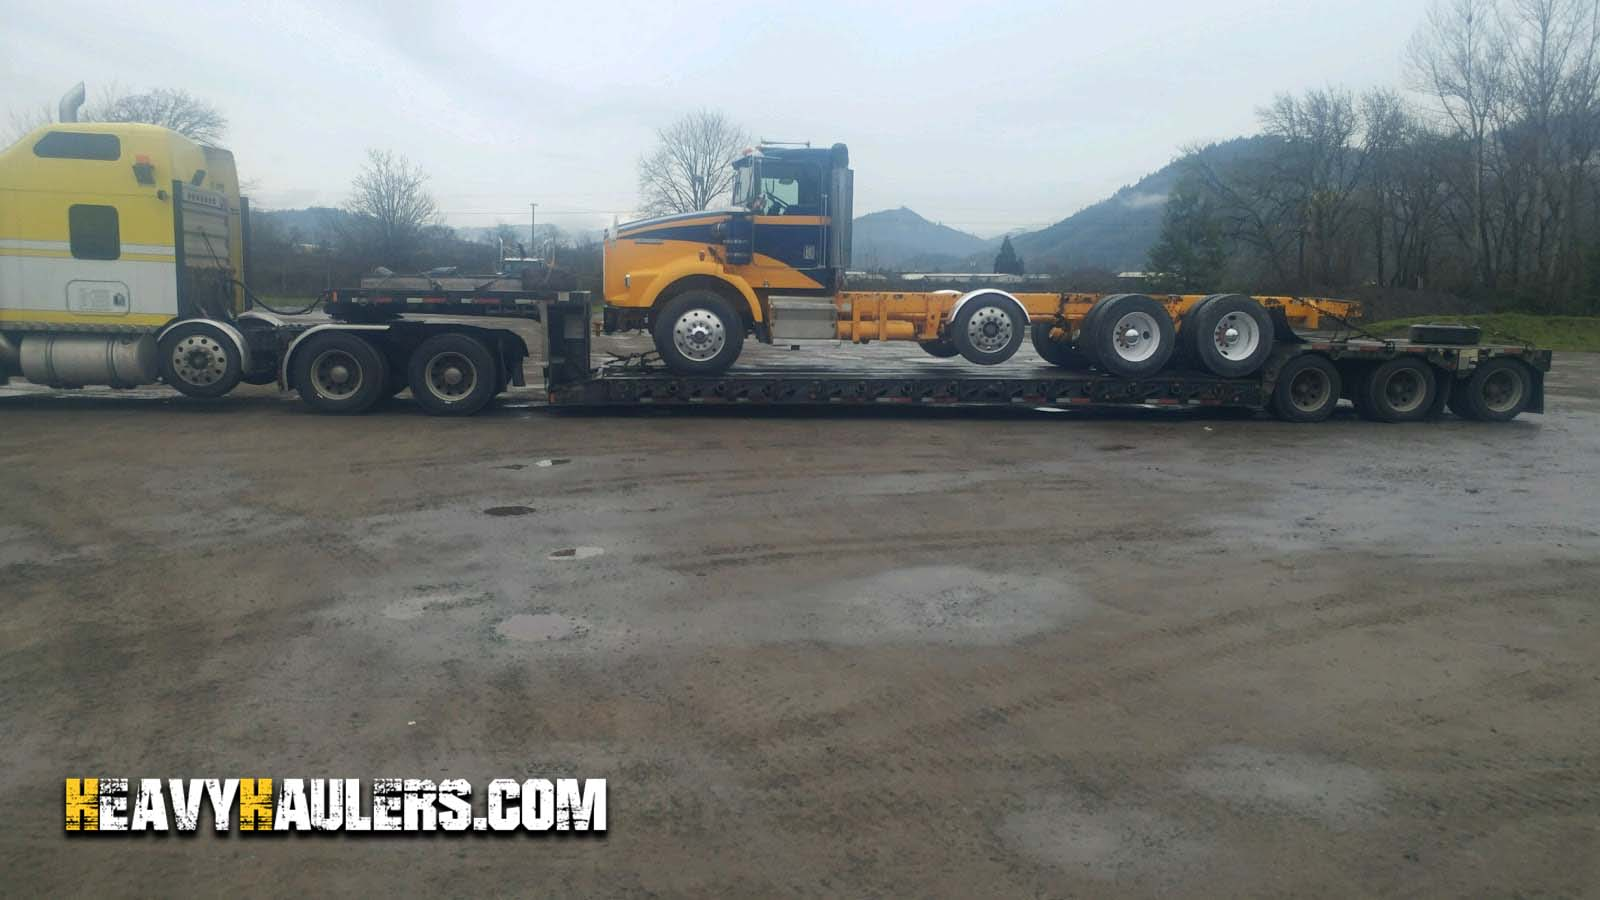 Kenworth T800 day cab being shipped